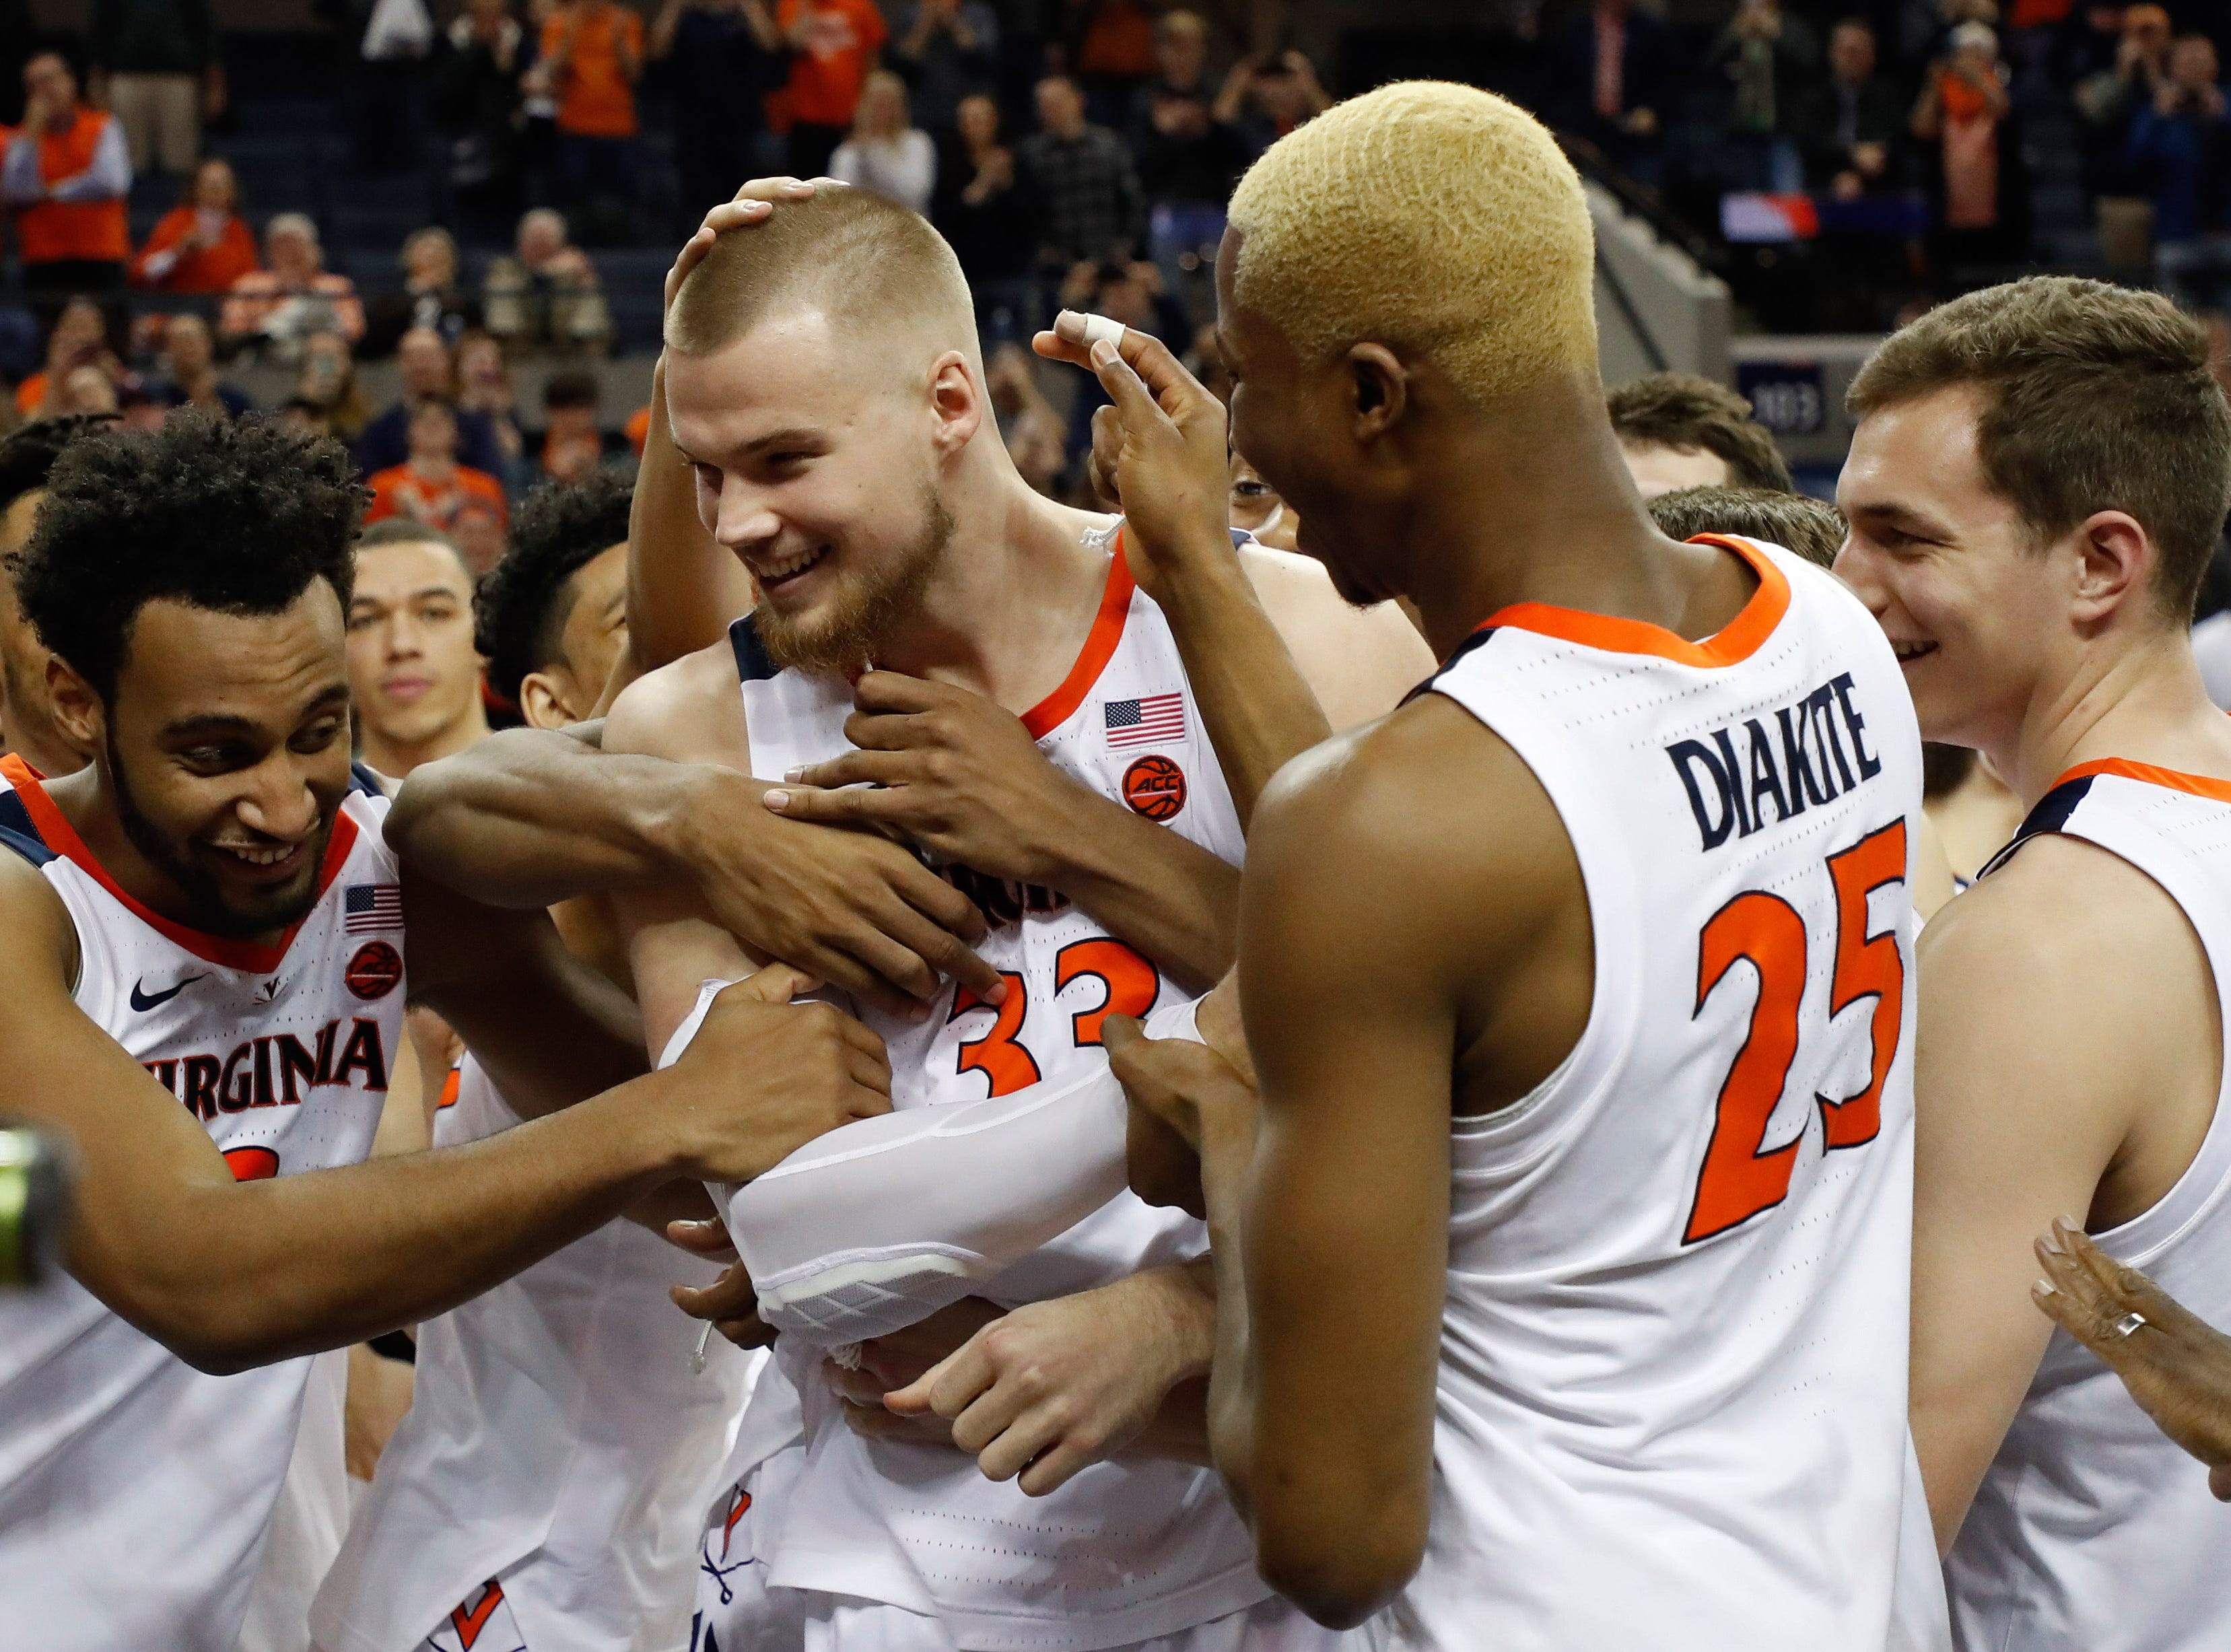 Virginia (29-3), No. 1 seed in South, at-large bid out of Atlantic Coast Conference